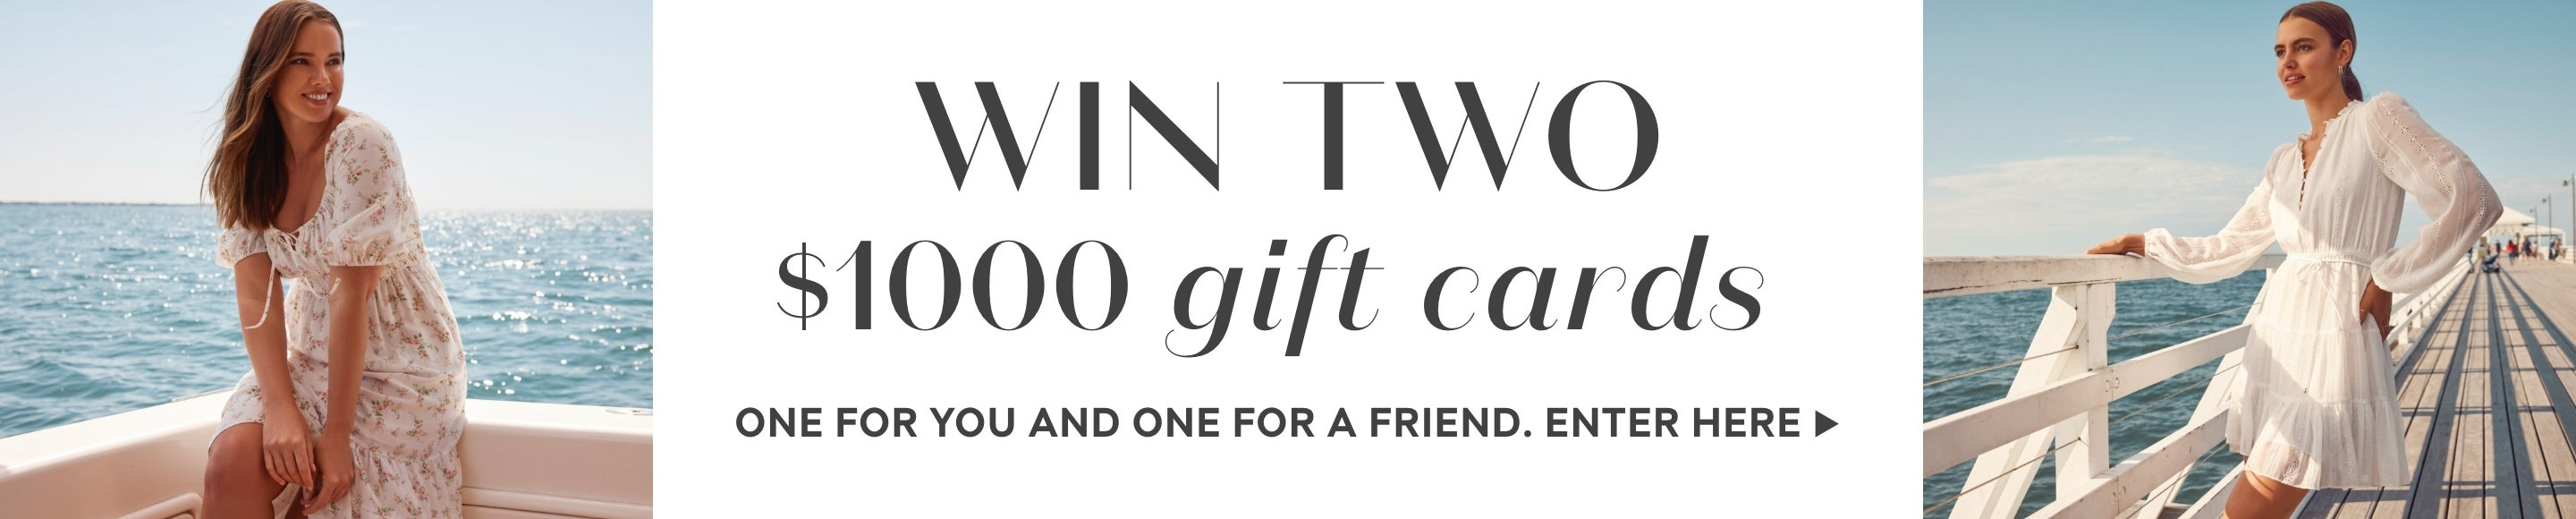 Forever New Win two gift cards competition